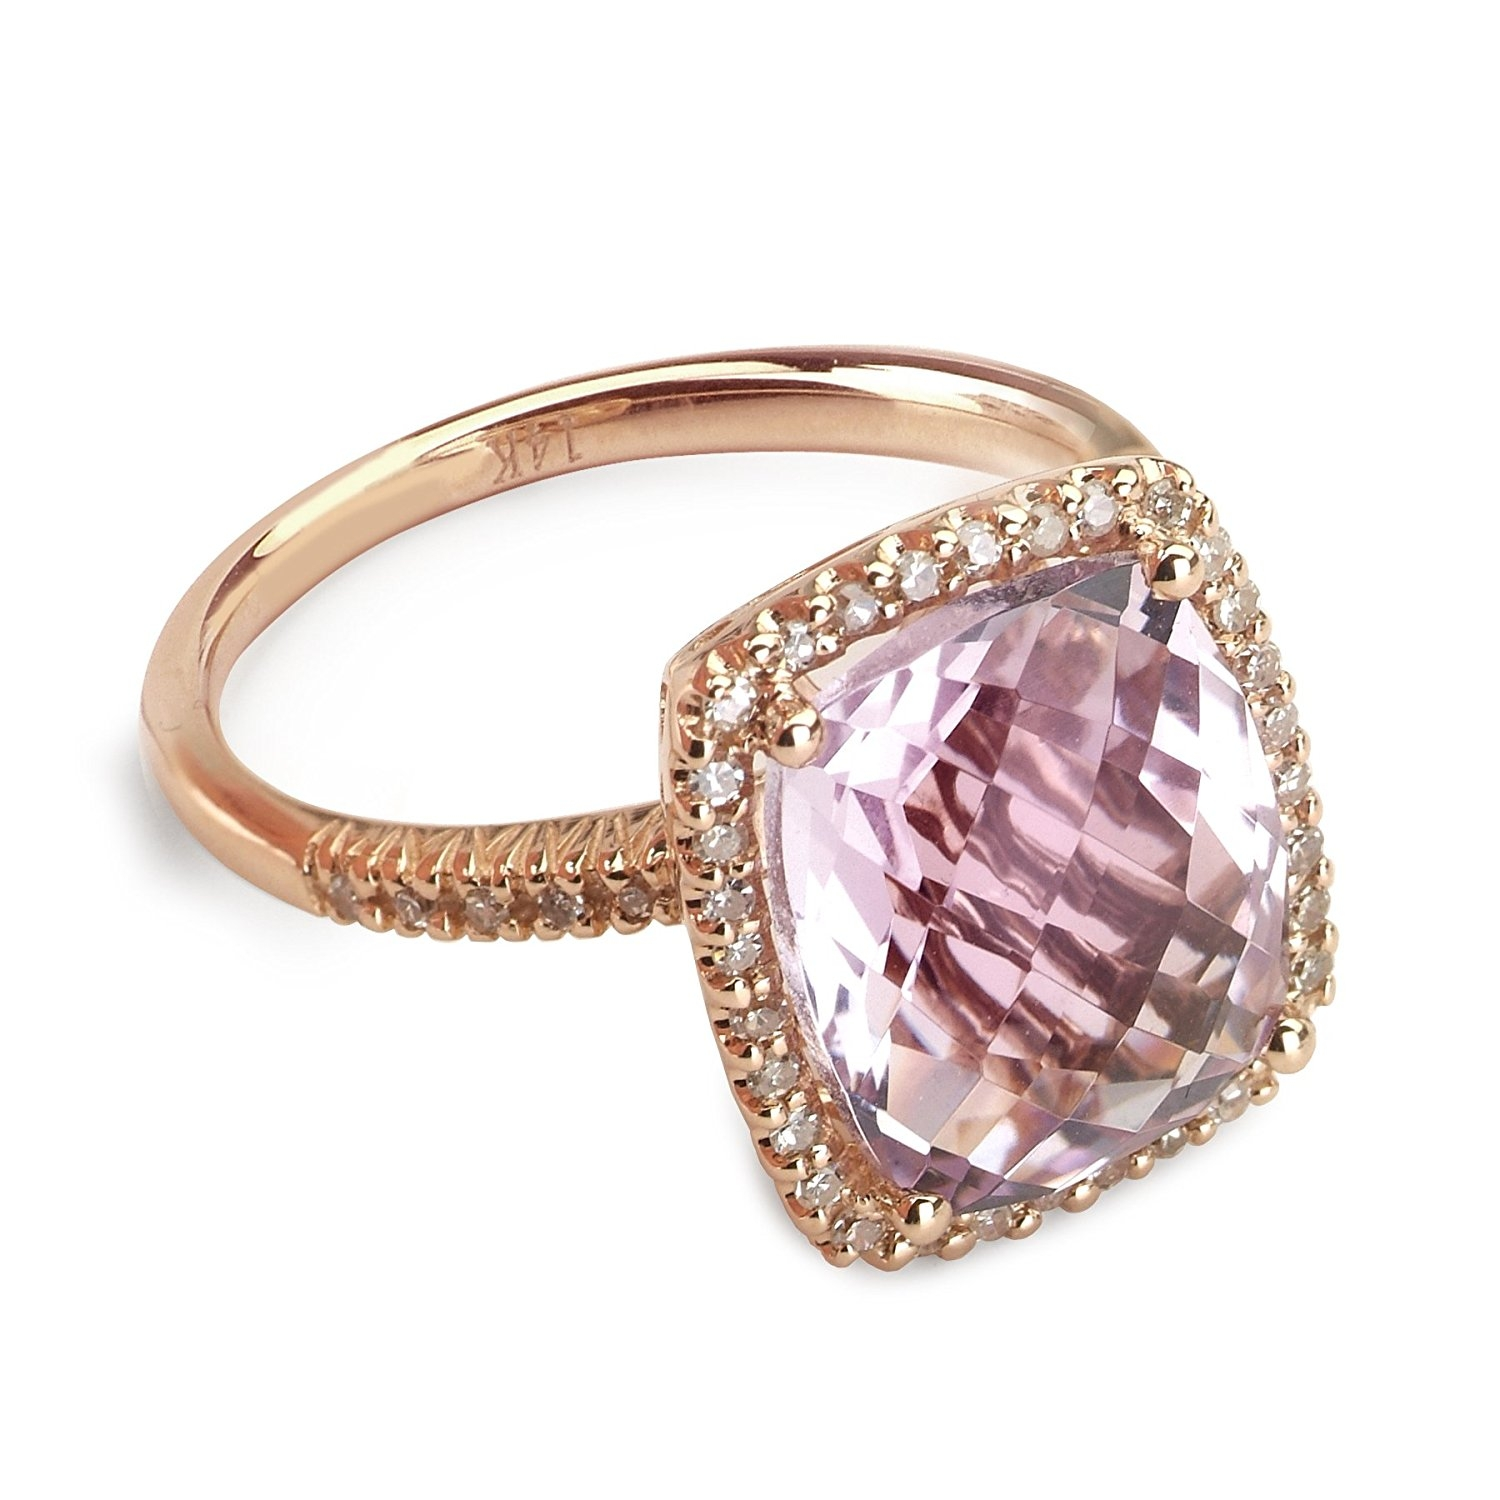 14k White Gold Square Diamond Ring with Pink Amethyst Stone .13 Ct Diamonds H-I Color SI2-I1 Clarity by Quality Jewels